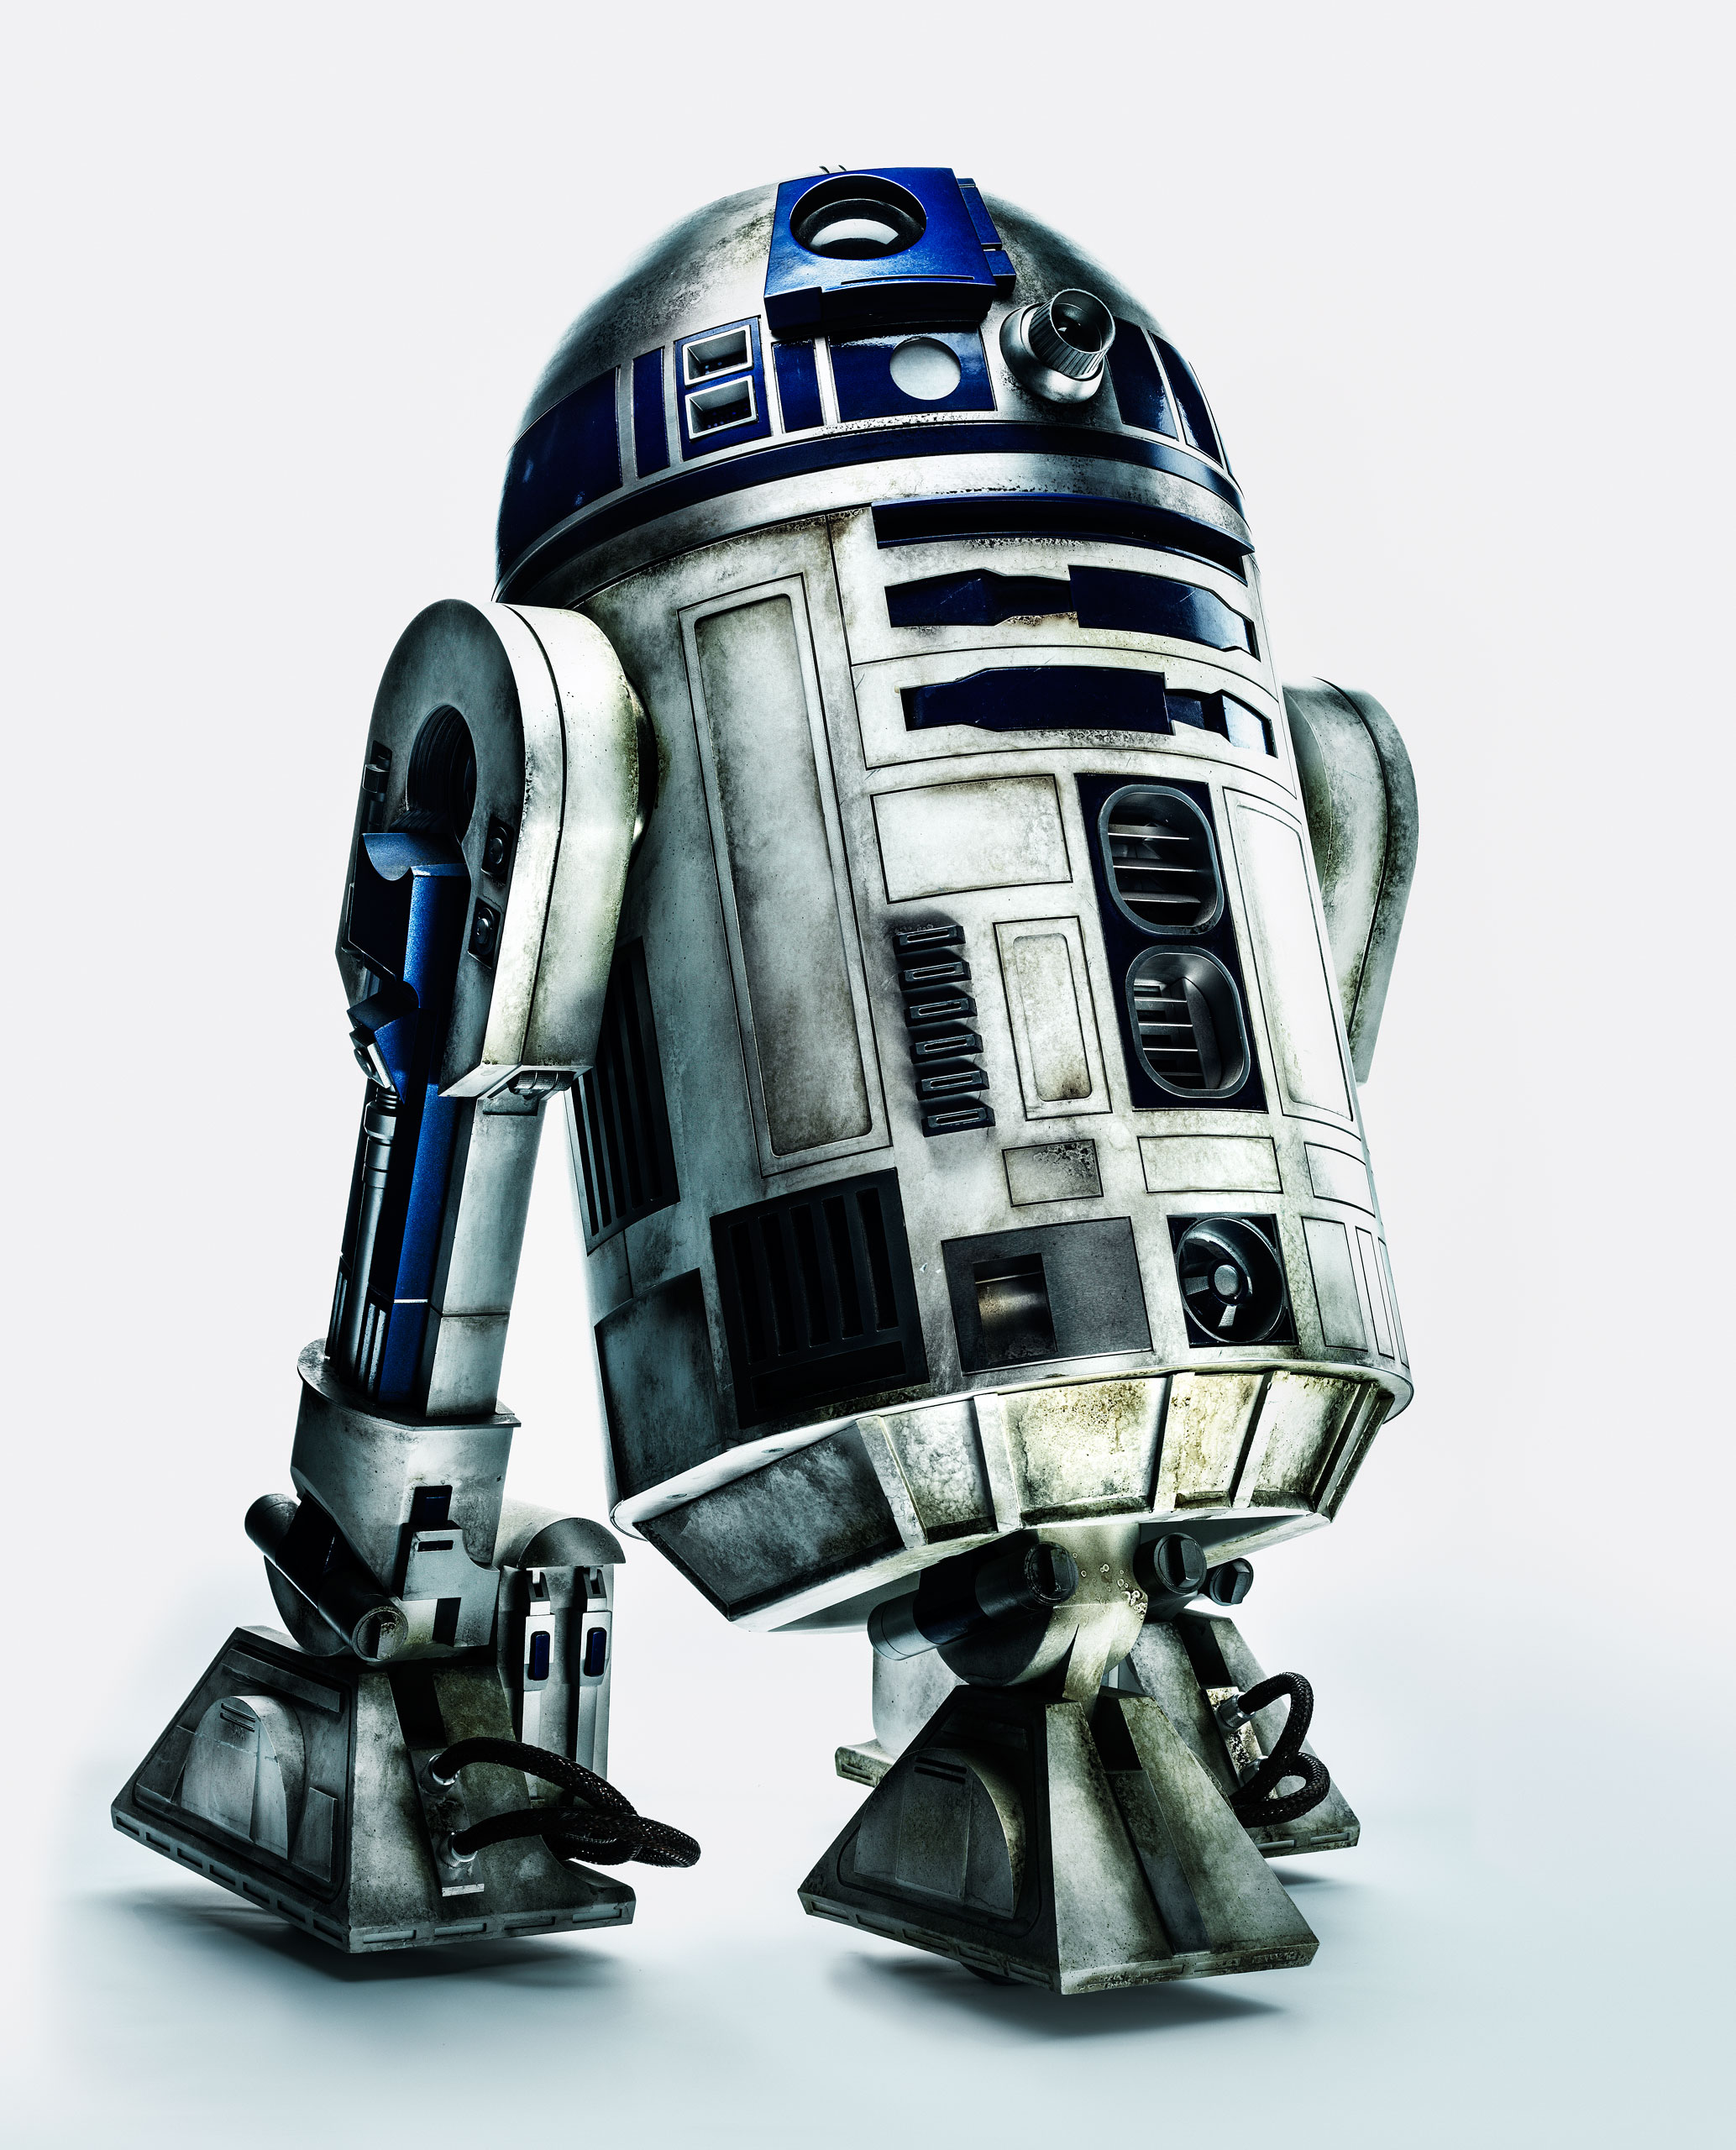 R2D2 photographed for TIME on October 29, 2015 in London.